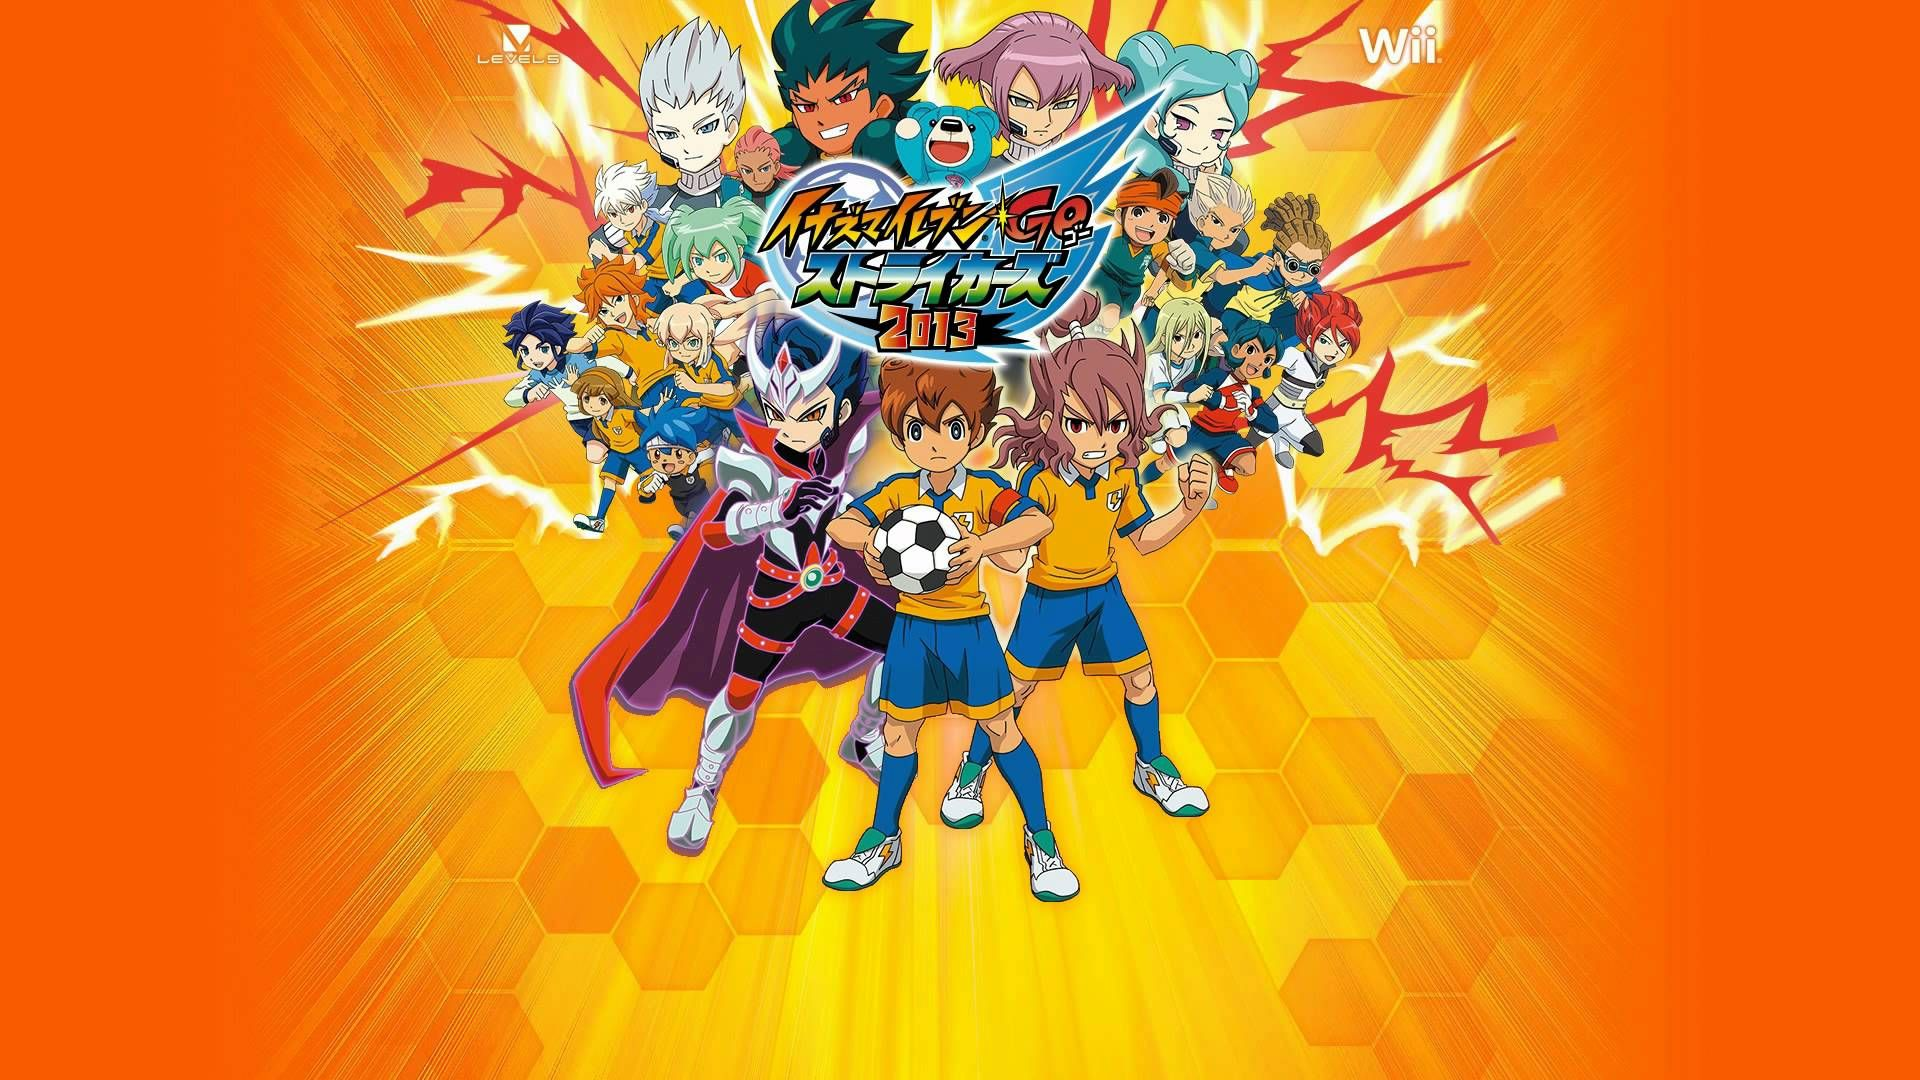 Inazuma Eleven Go Strikers 2013 Ost Beta S Theme Anime Images Eleventh Ost